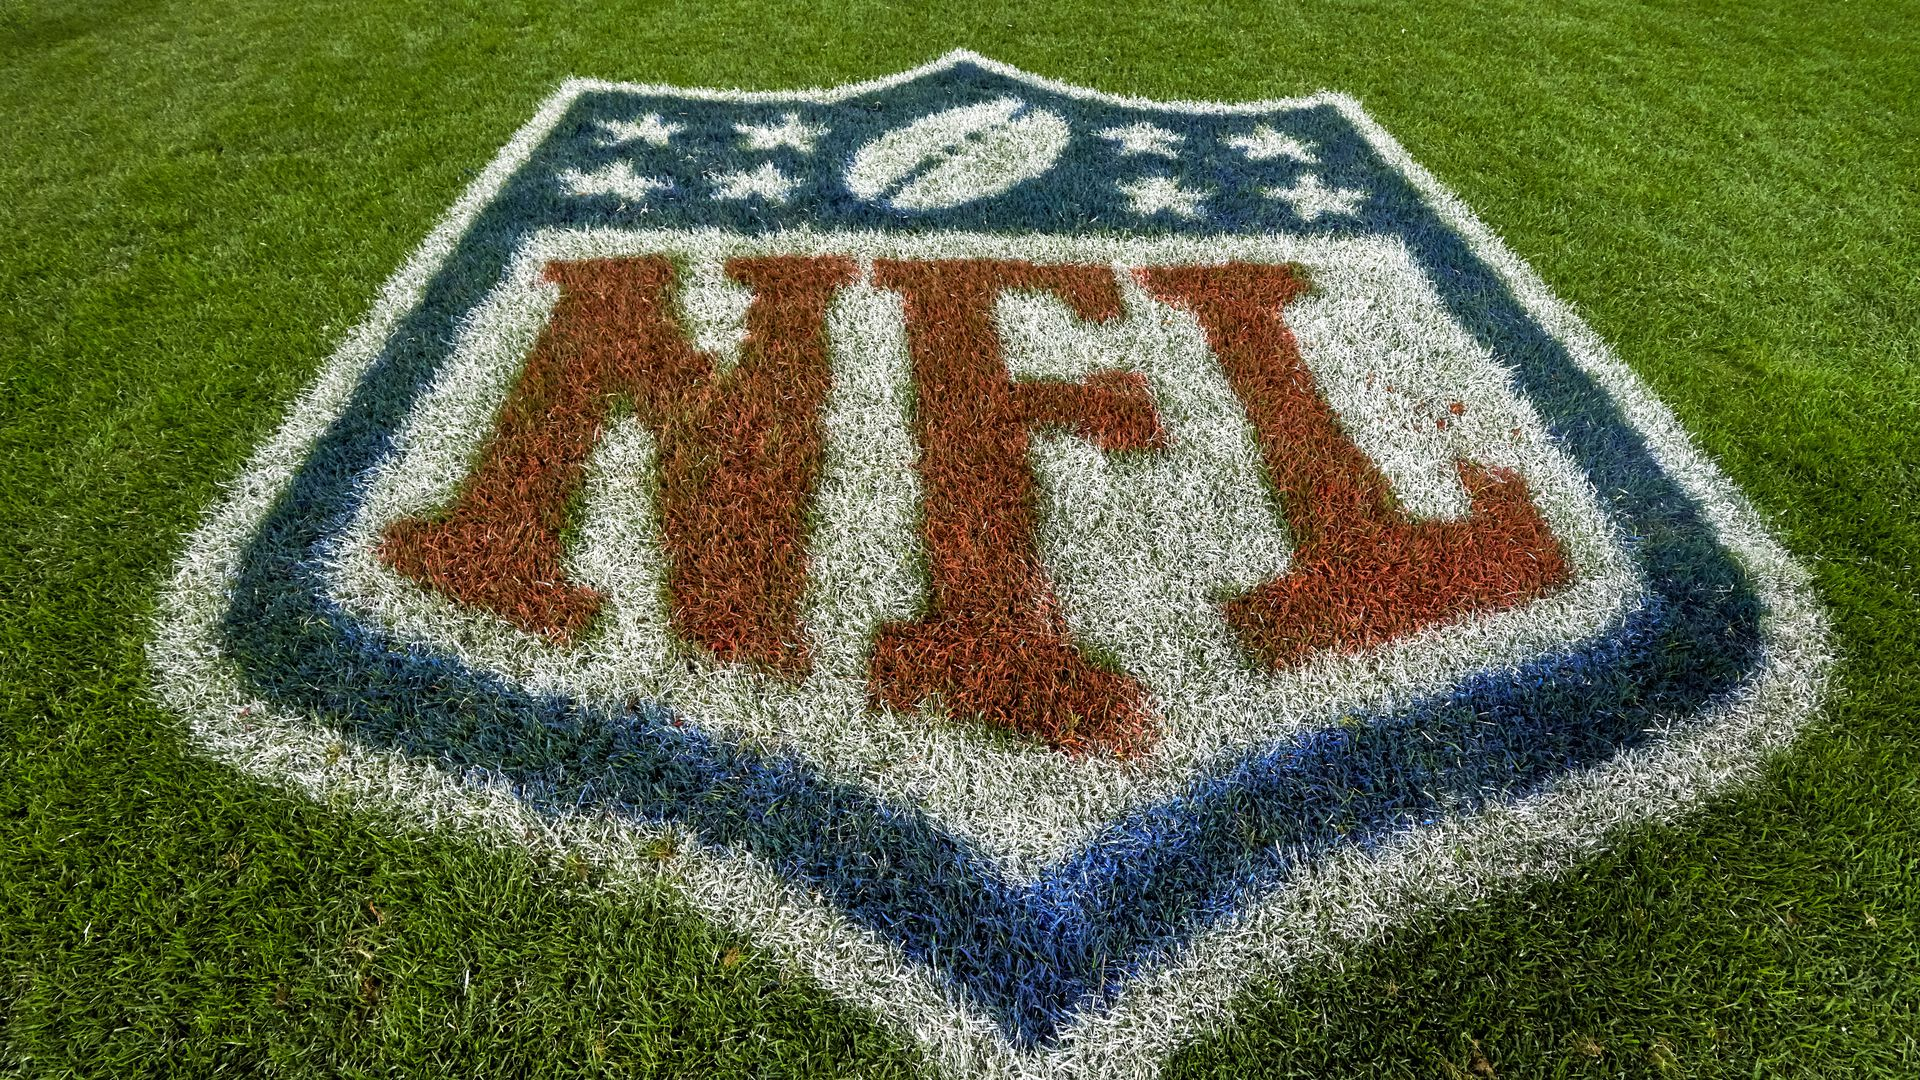 The NFL's logo